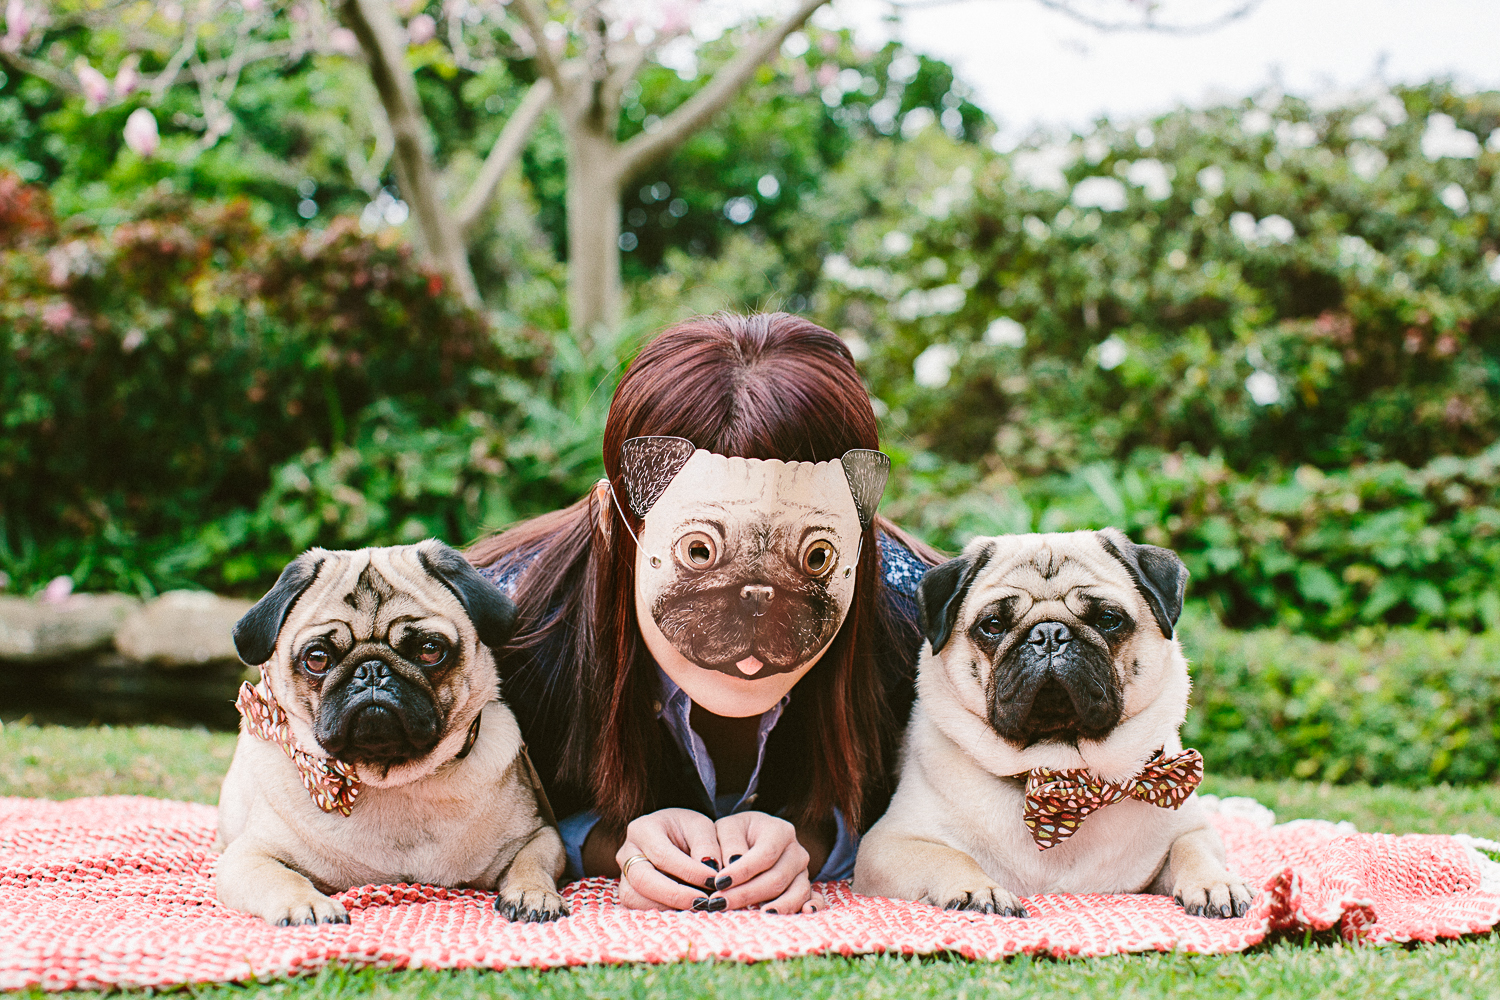 twoguineapigs_pet_photography_oh_jaffa_picnic_pugs_1500-20.jpg